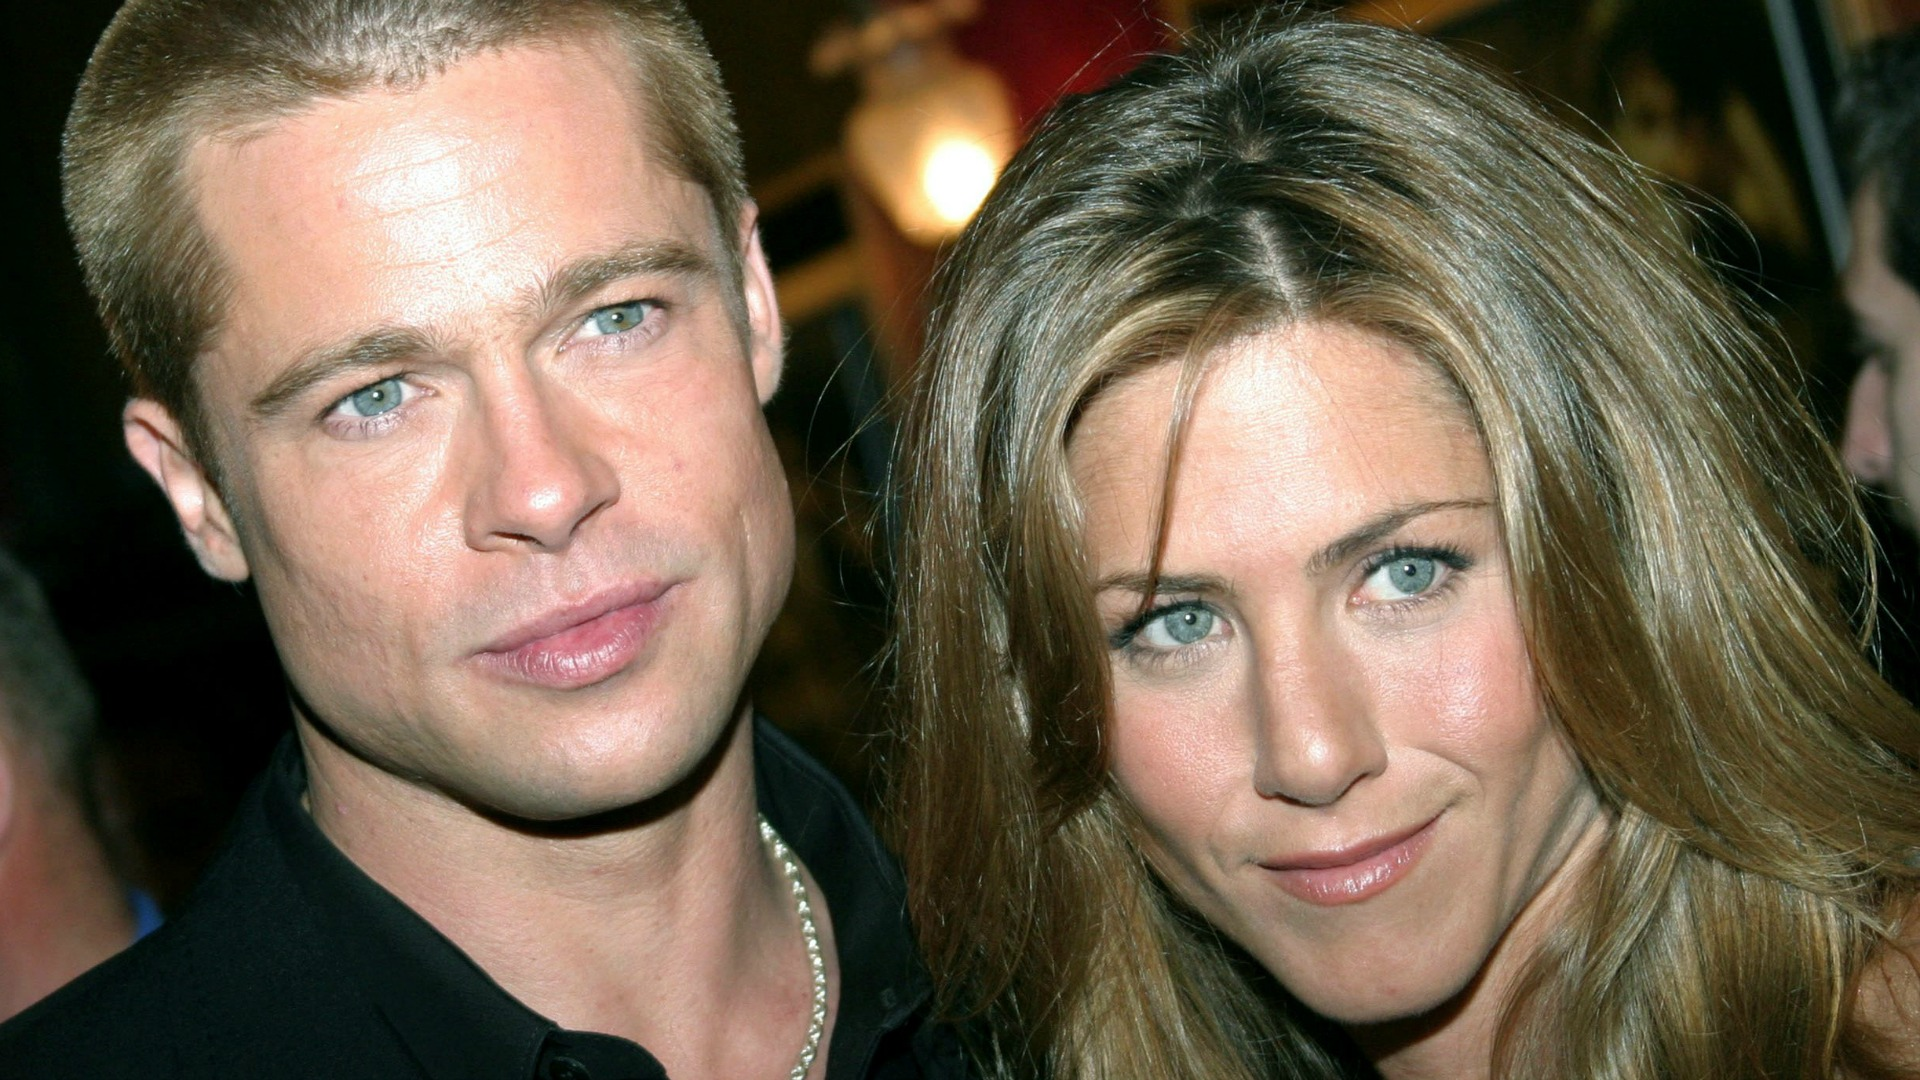 Could Jennifer Aniston and Brad Pitt get back together again?